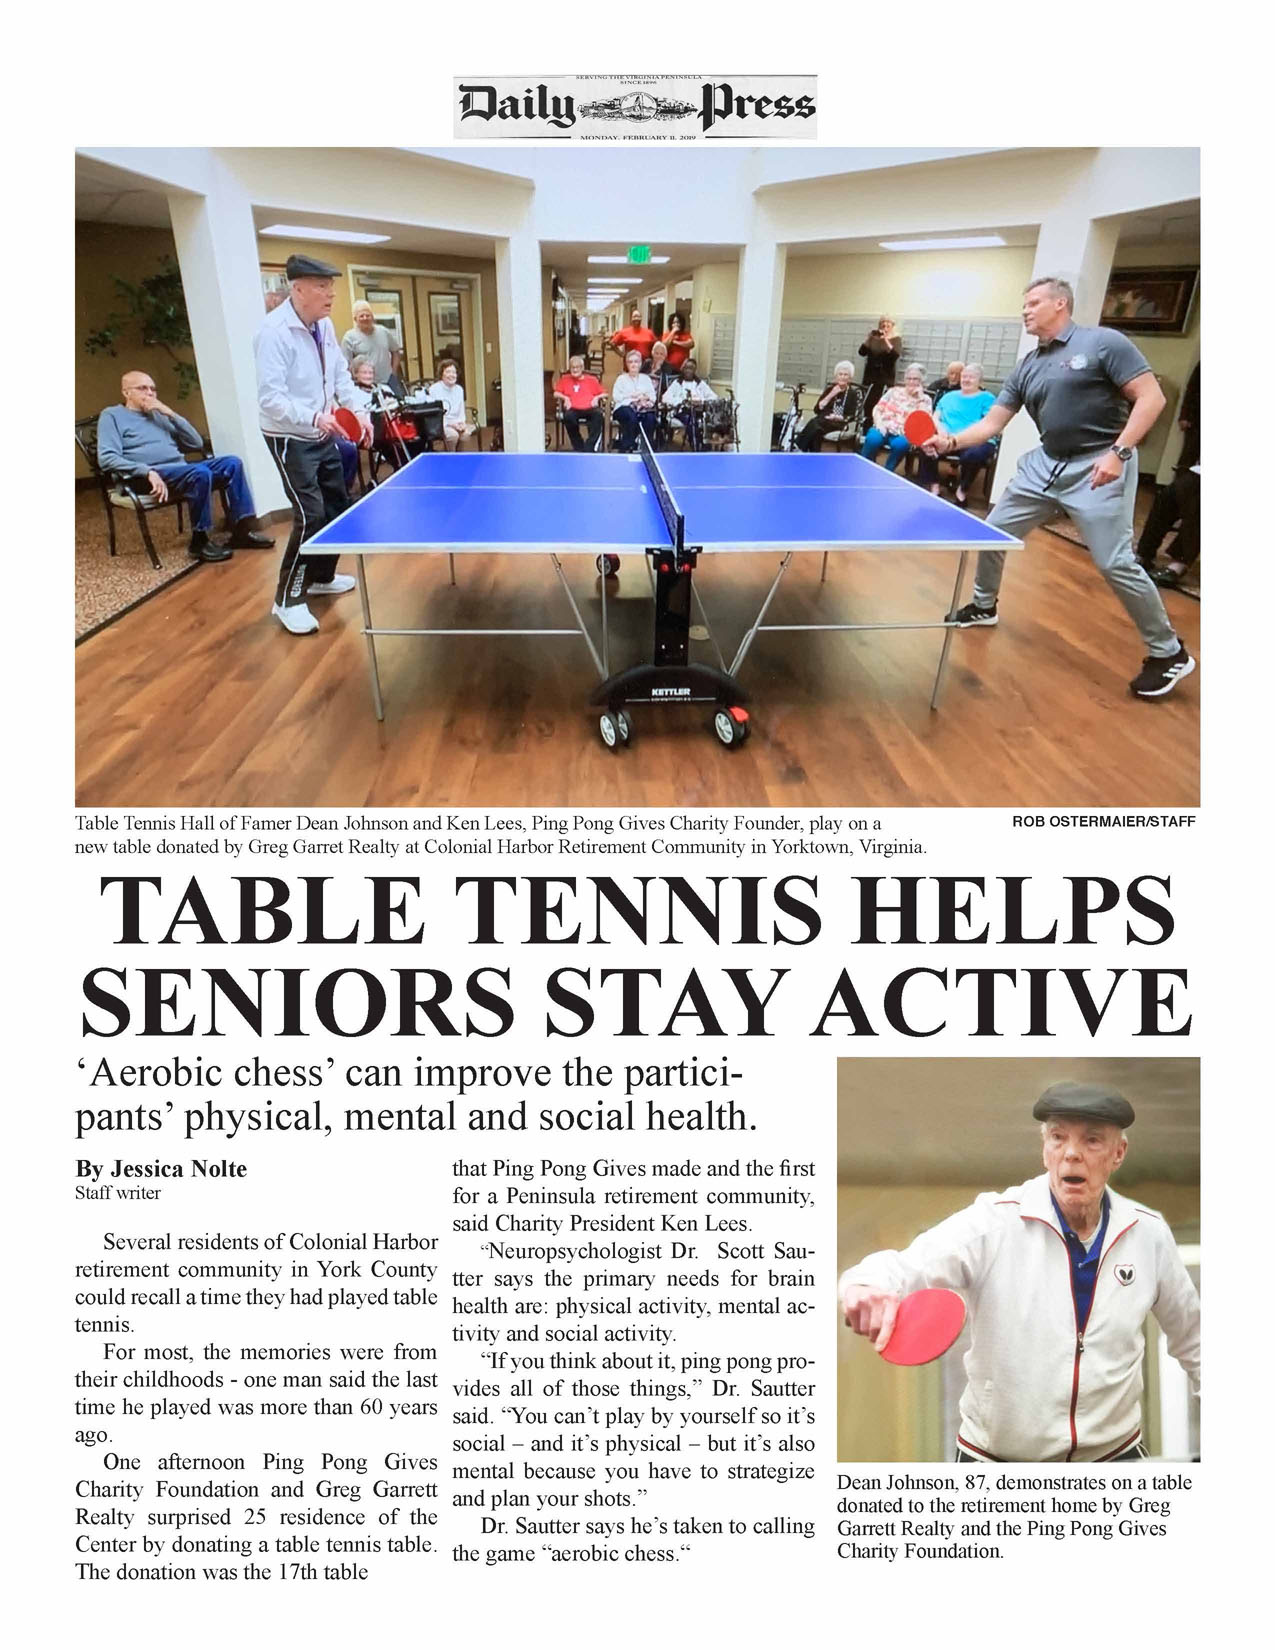 Table Tennis Helps Seniors Stay Active Daily-Press-articlelr